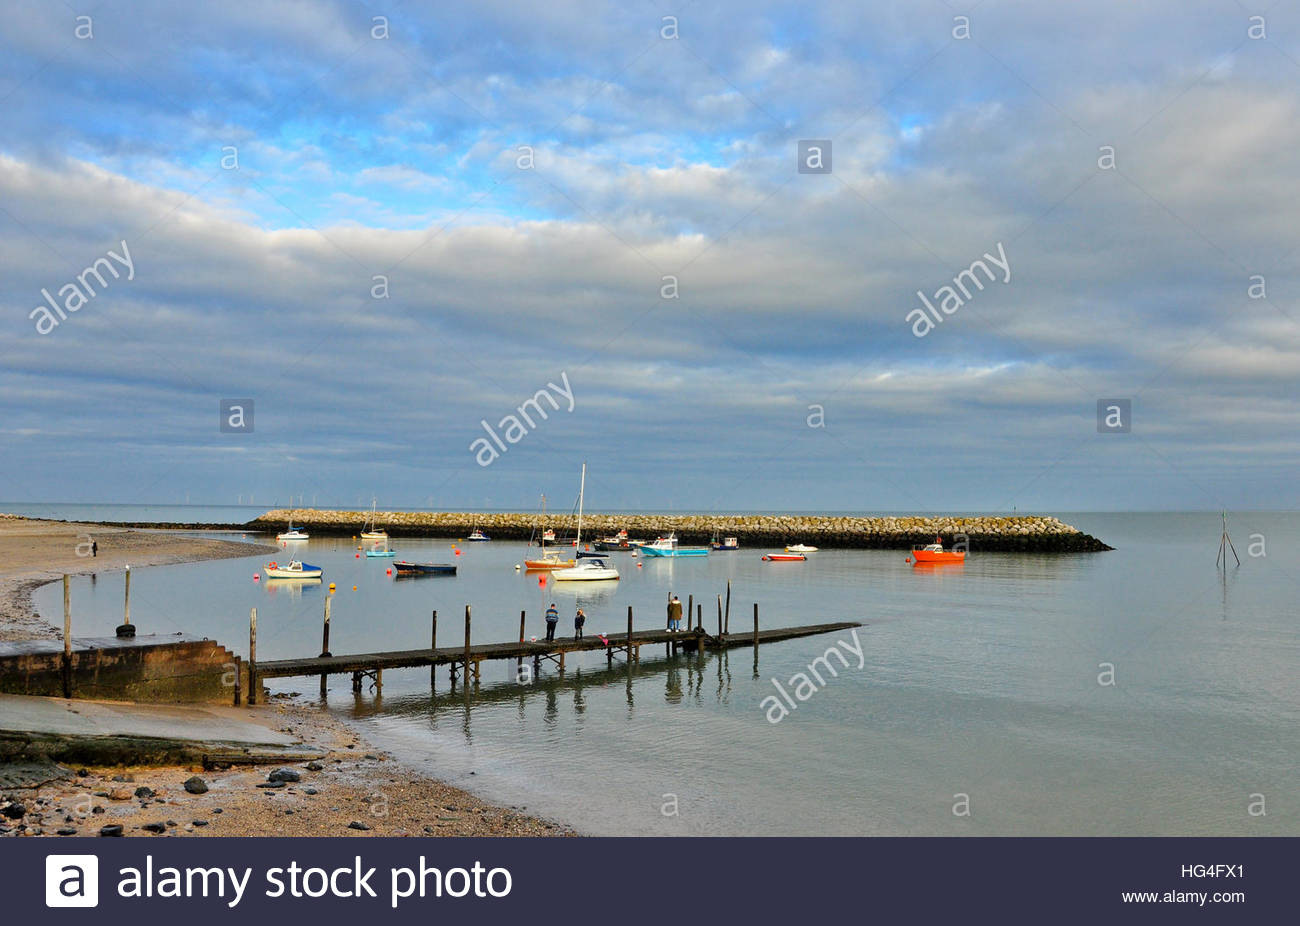 Boats in the harbour at Rhos on Sea, Colwyn Bay in Wales. Stock Photo